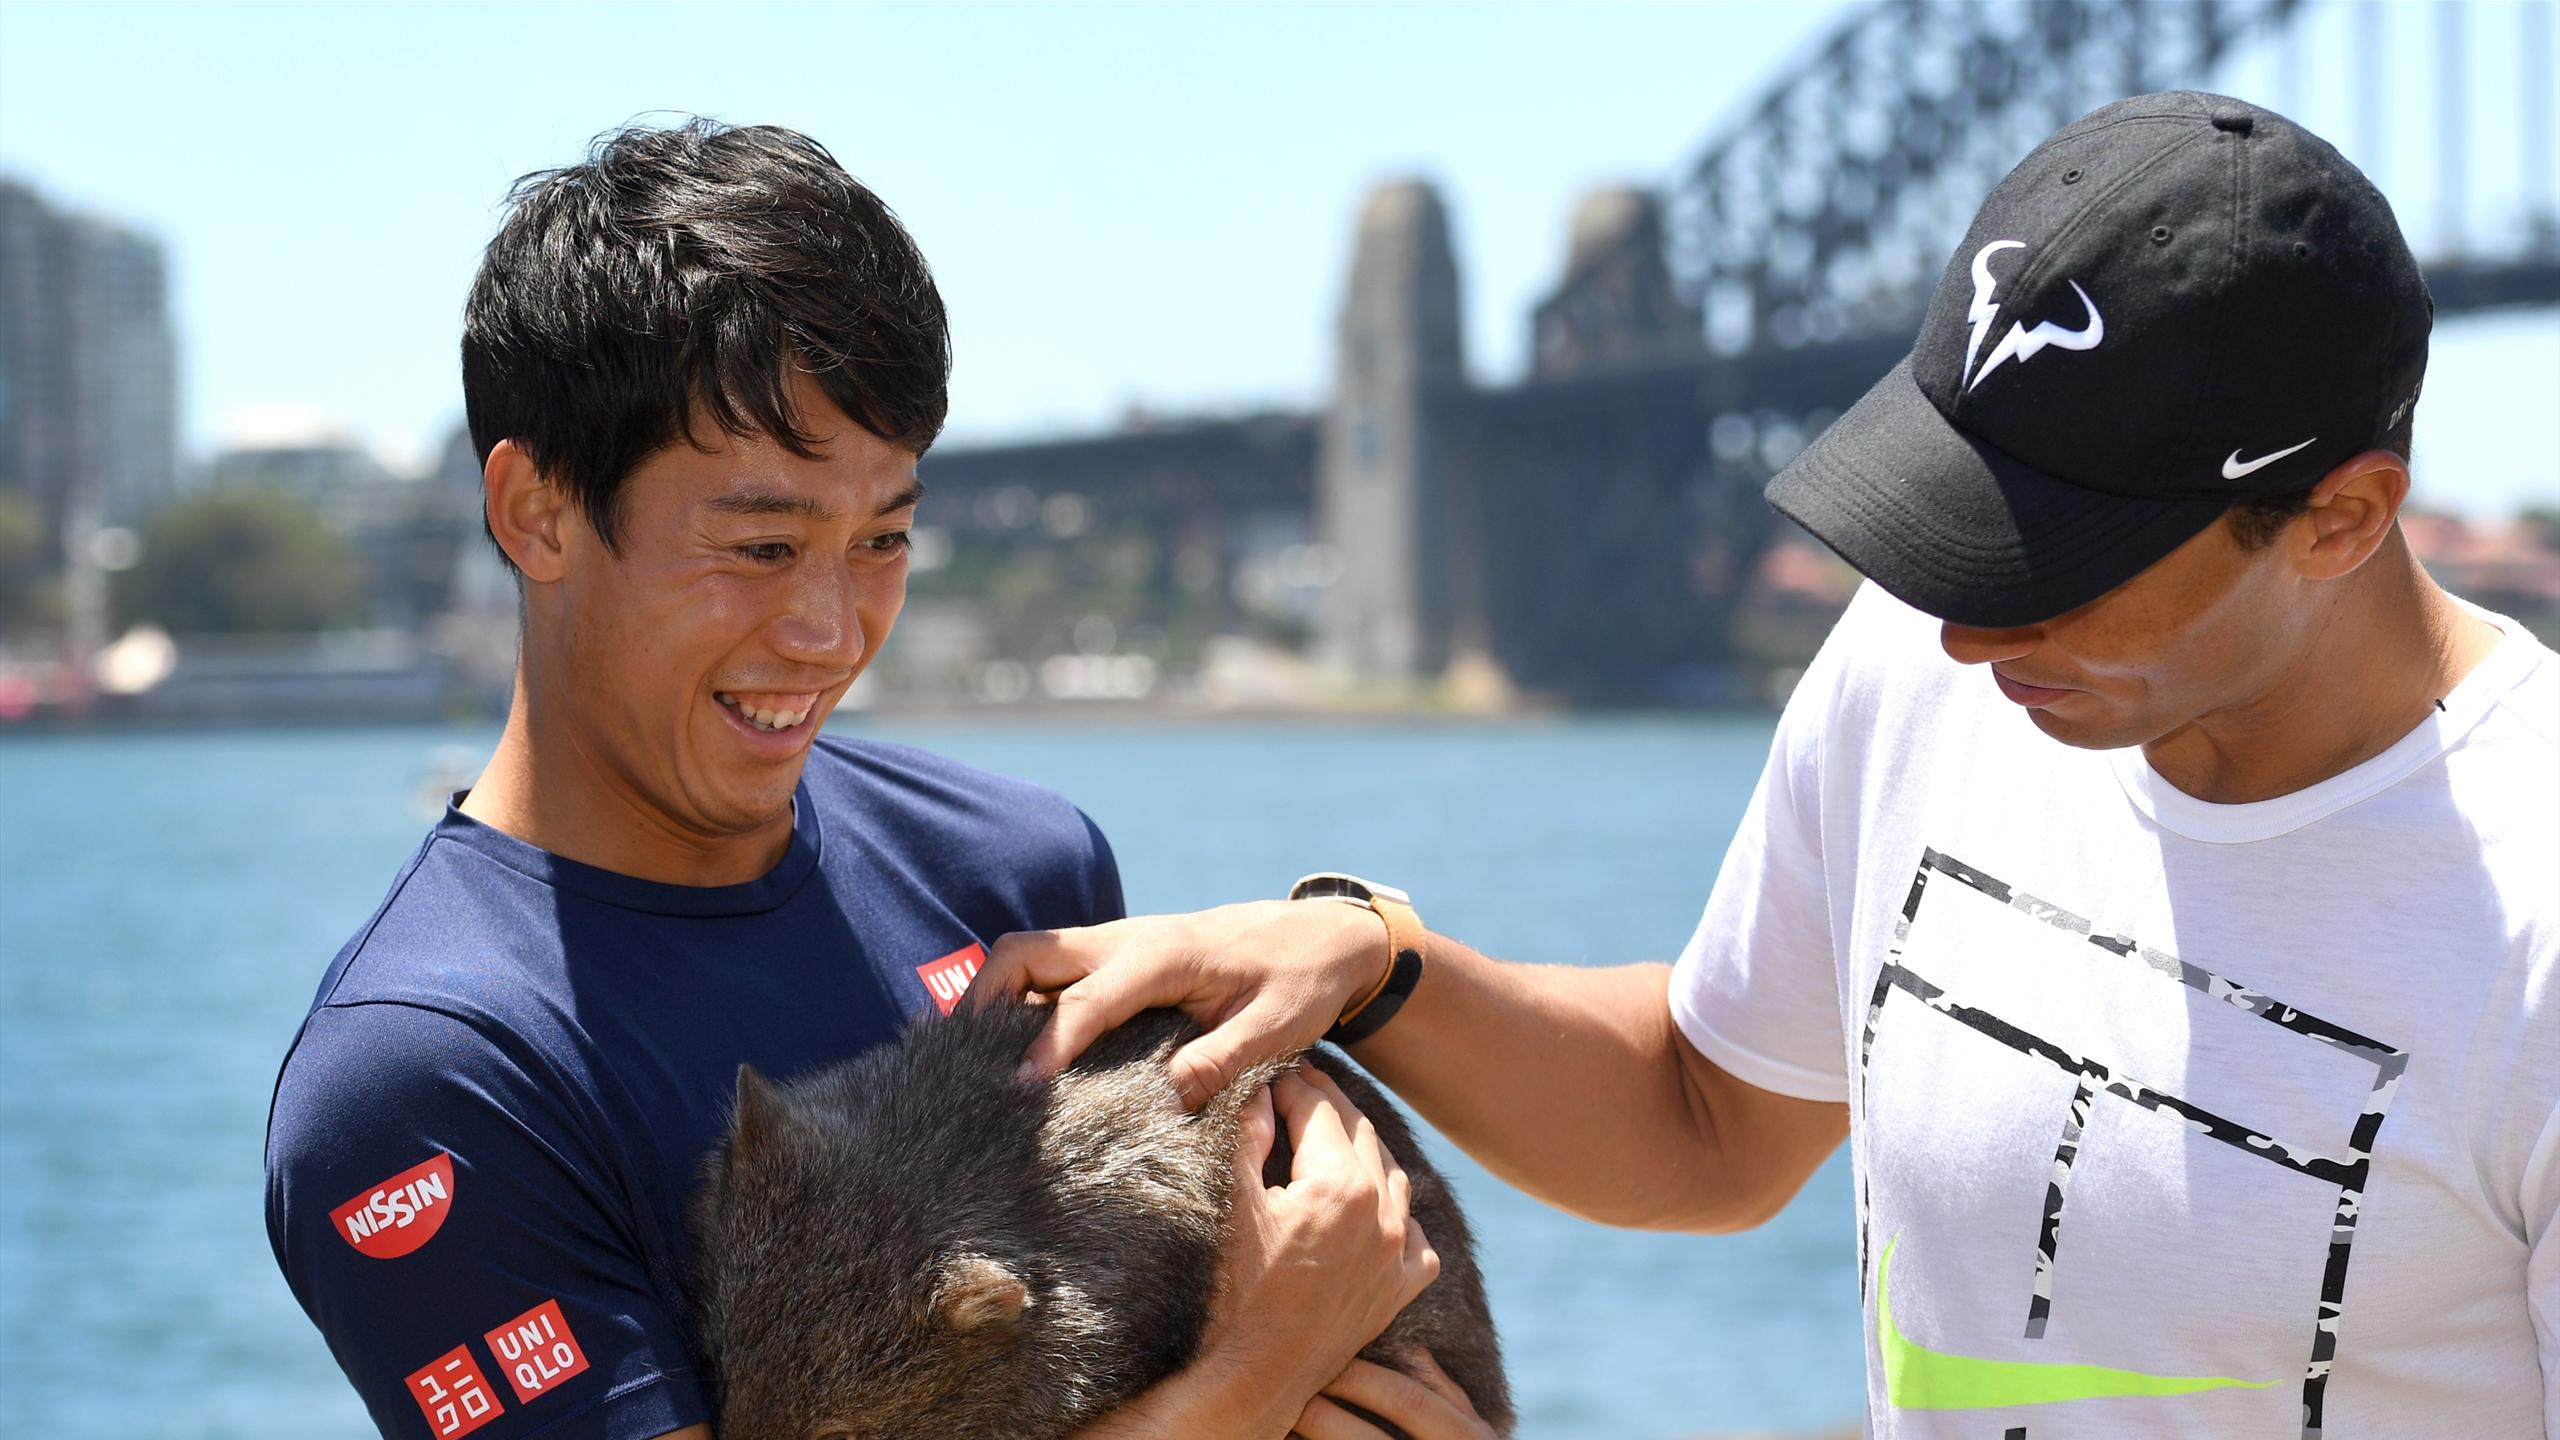 Tennis players Rafael Nadal of Spain (L) and Kei Nishikori of Japan (R) handle a 10-month old wombat called Lola